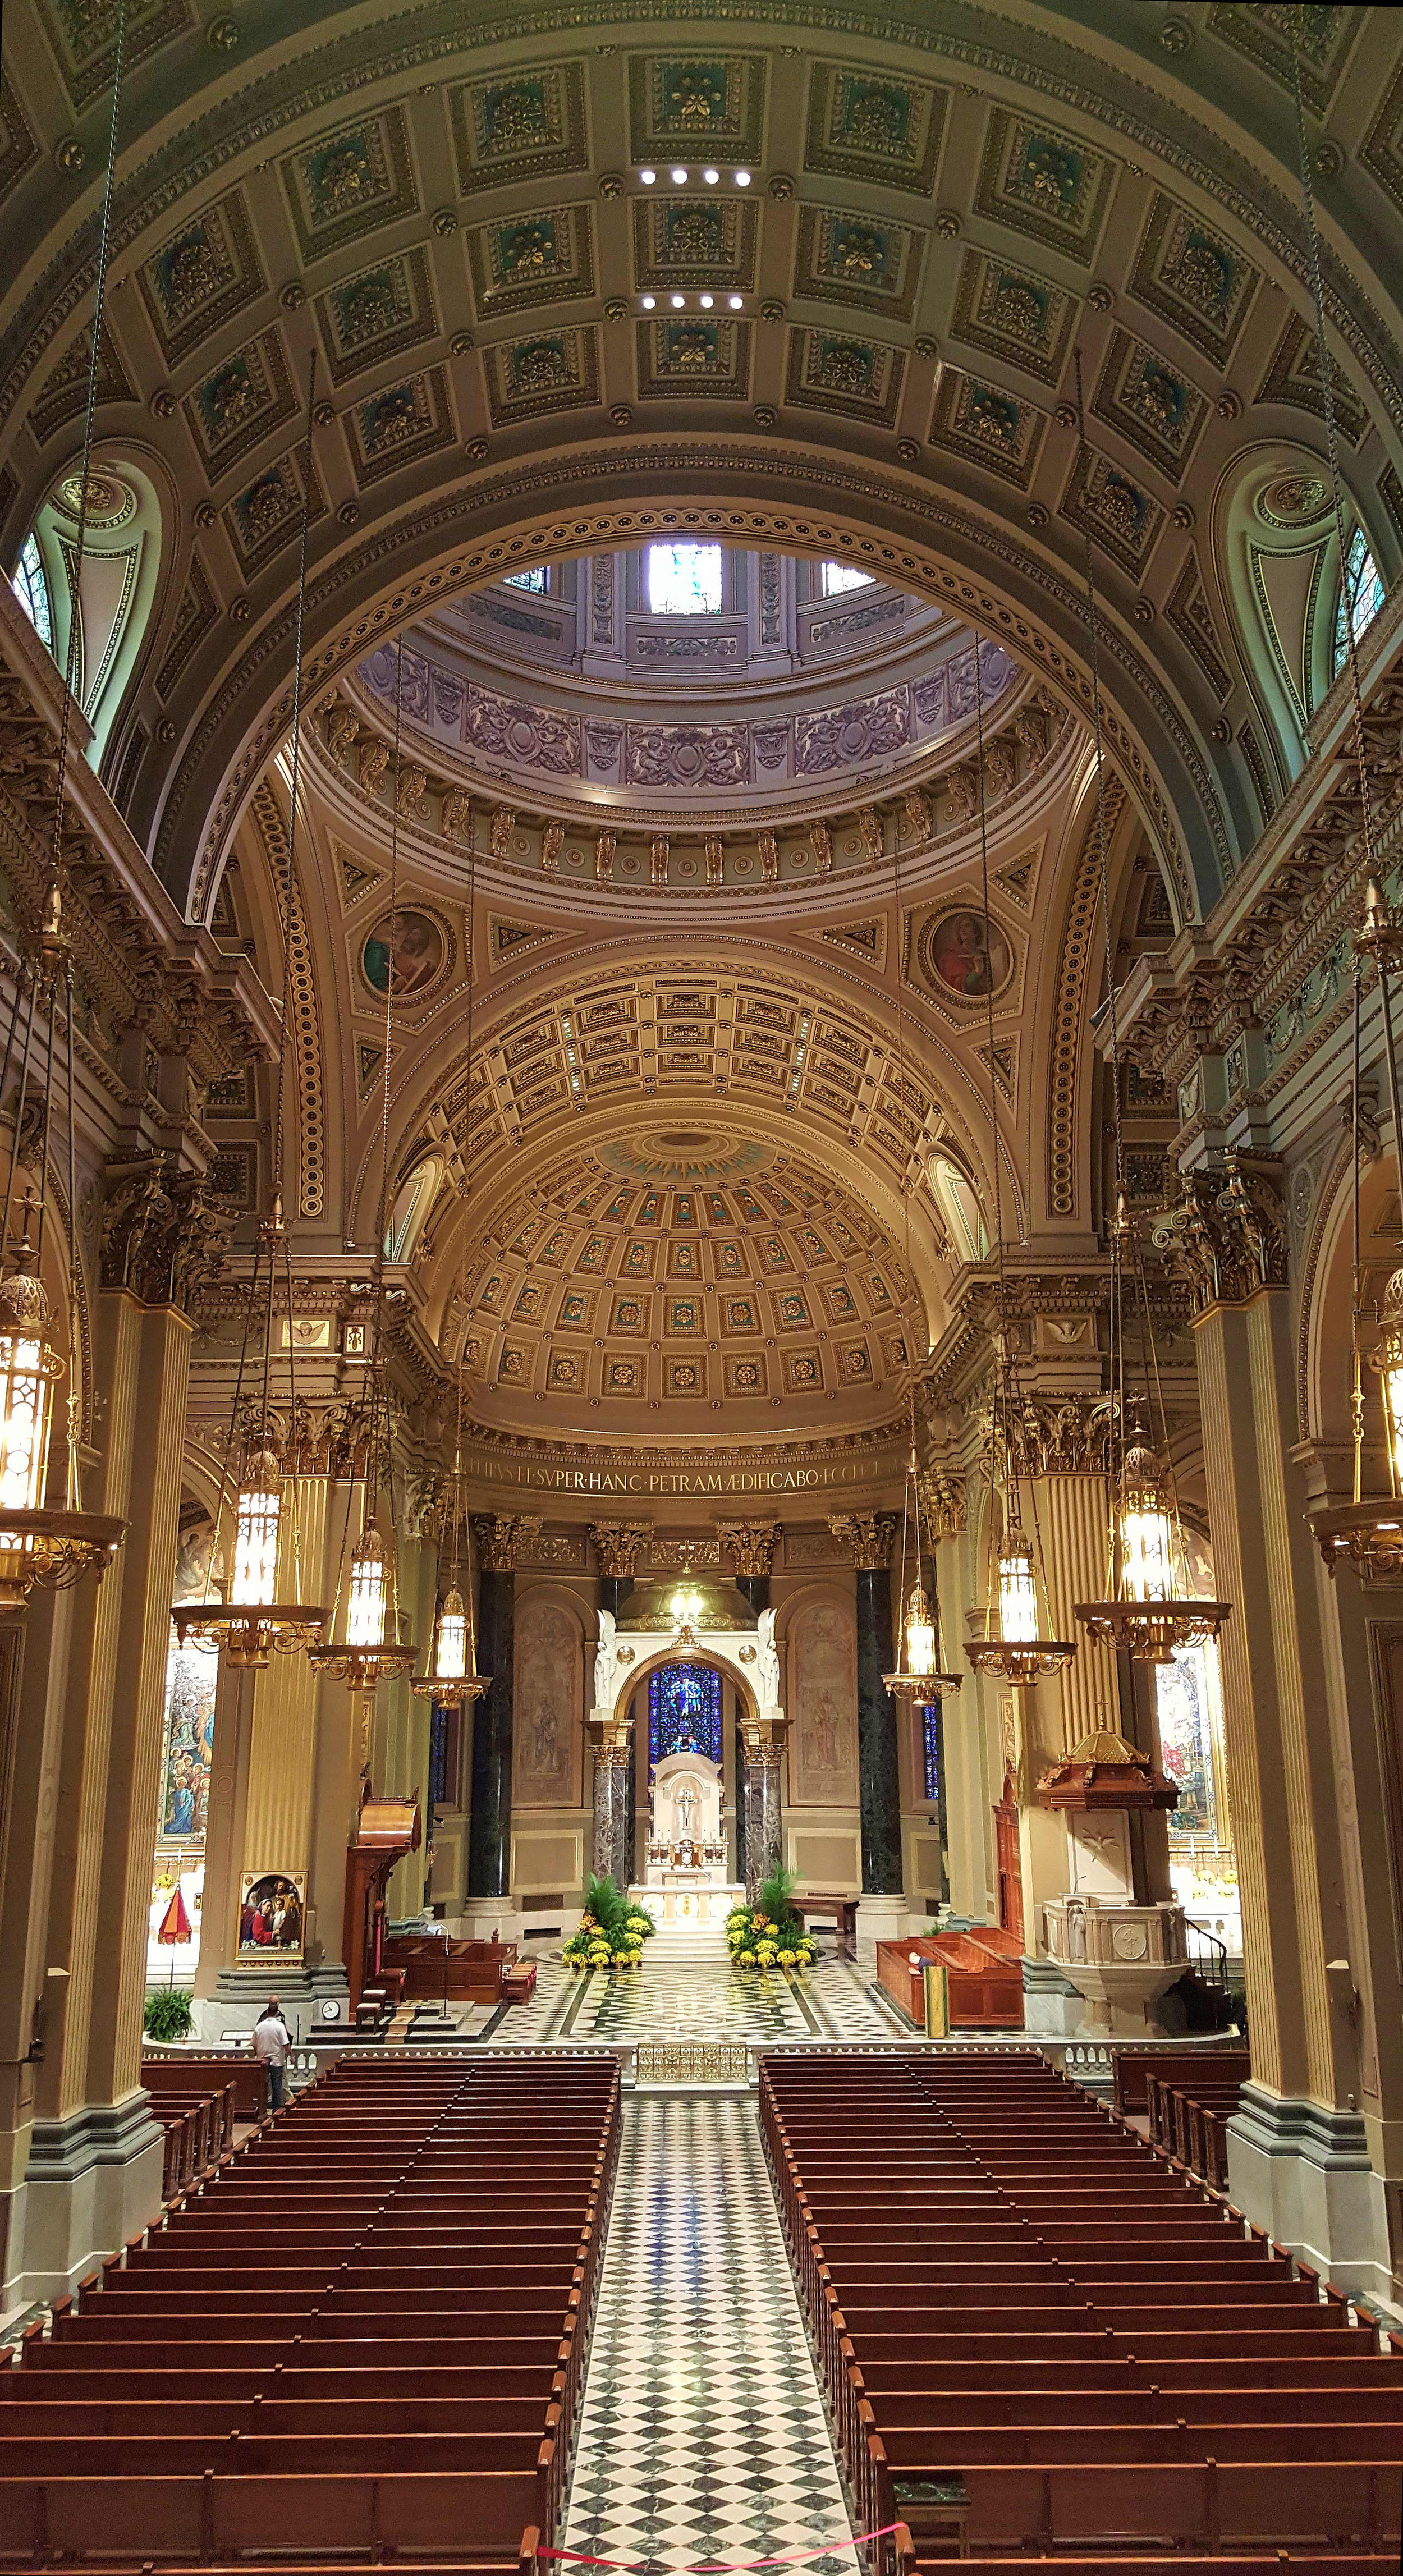 The Cathedral Basilica of Saints Peter and Paul in Philadelphia.